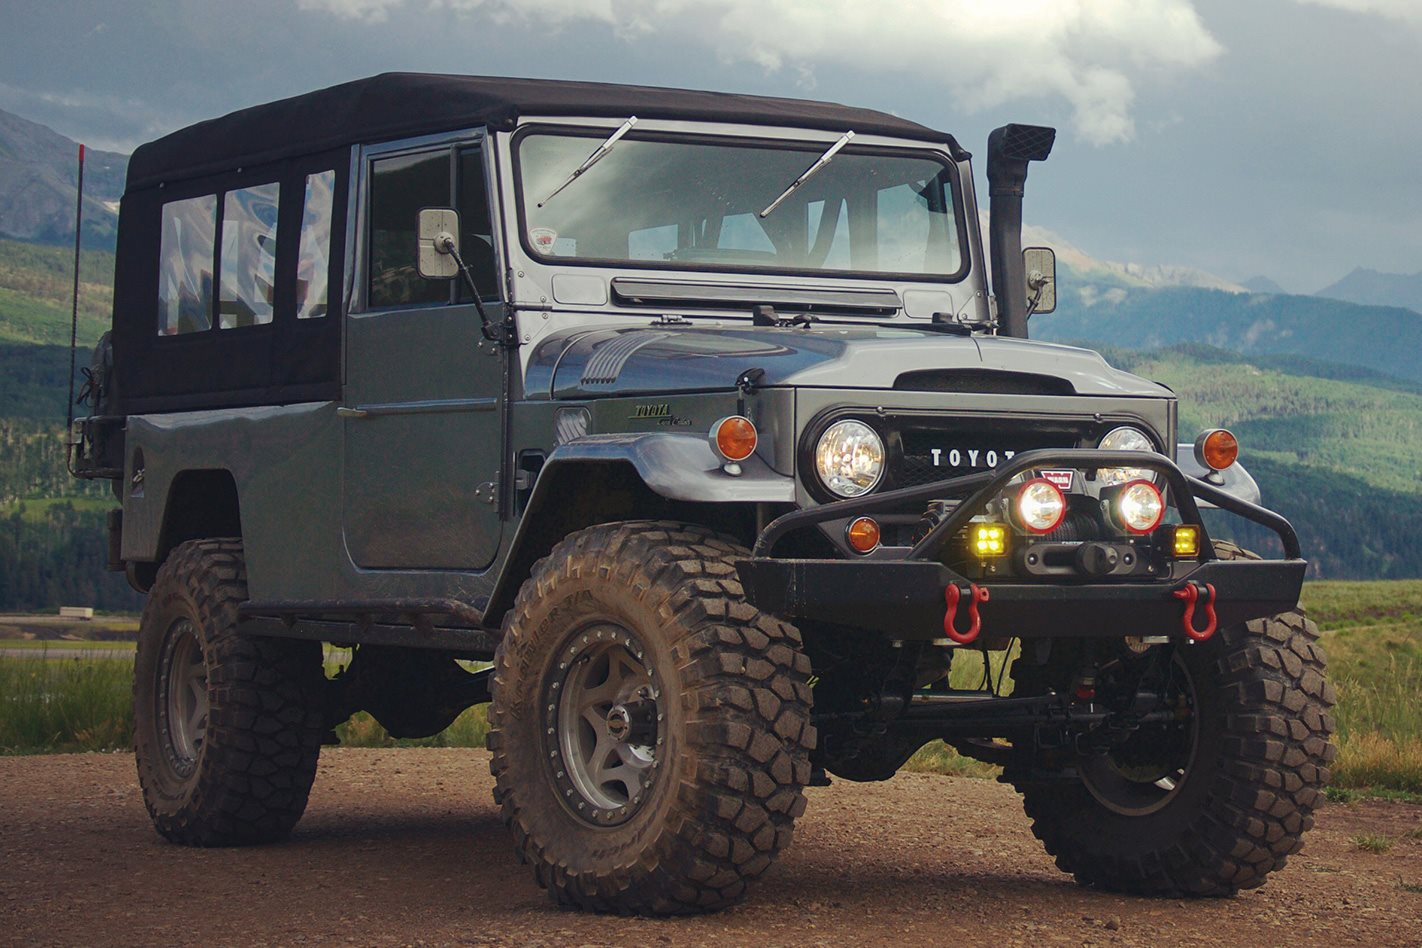 1966 Land Cruiser FJ45 Troopy review